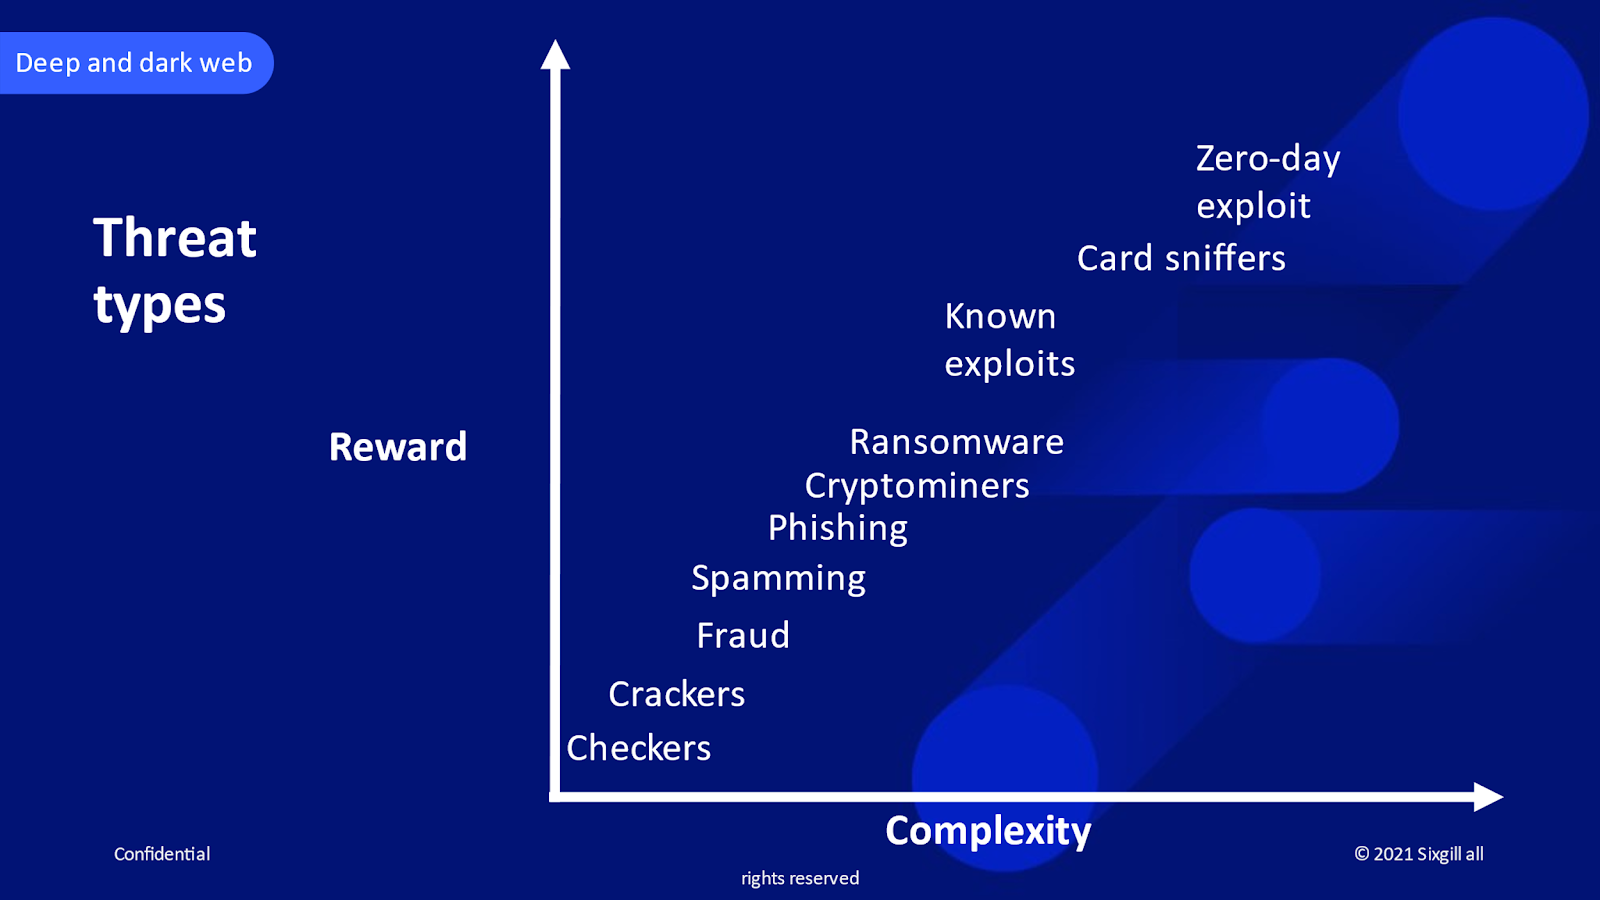 The levels of complexity of various types of cyberattacks and the scope of the rewards their perpetrators often enjoy